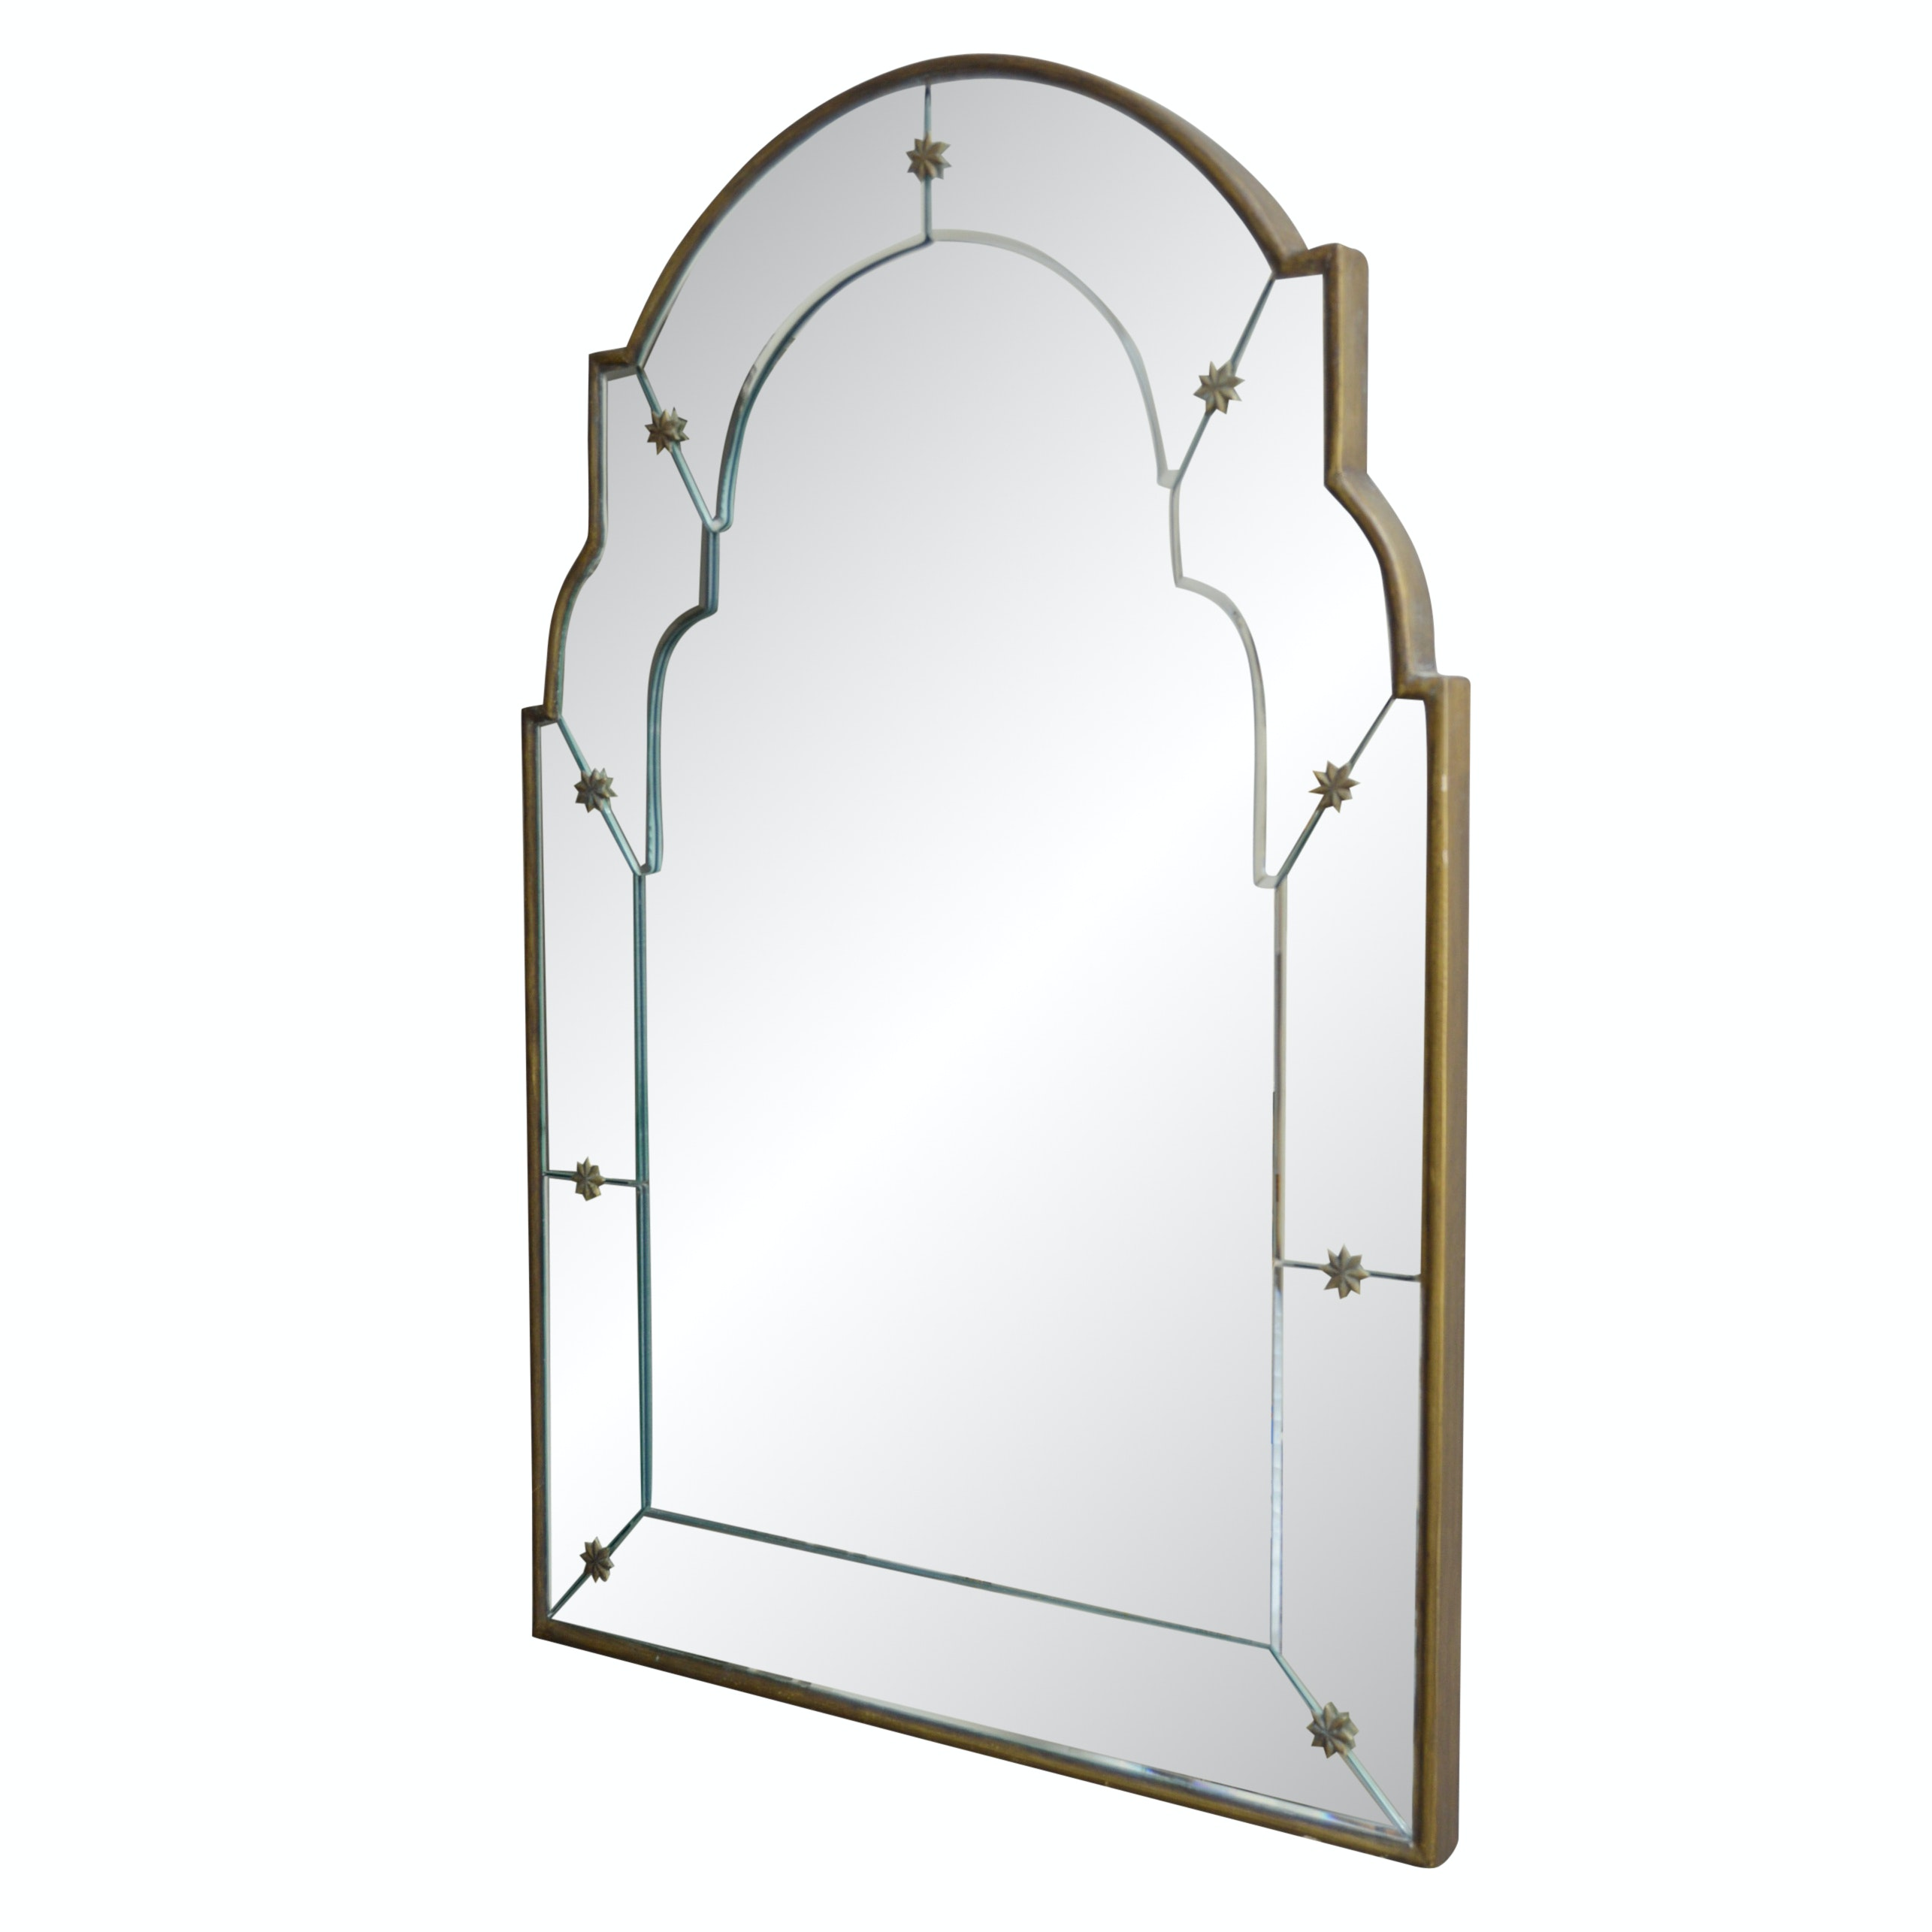 Vintage Art Deco Wall Mirror